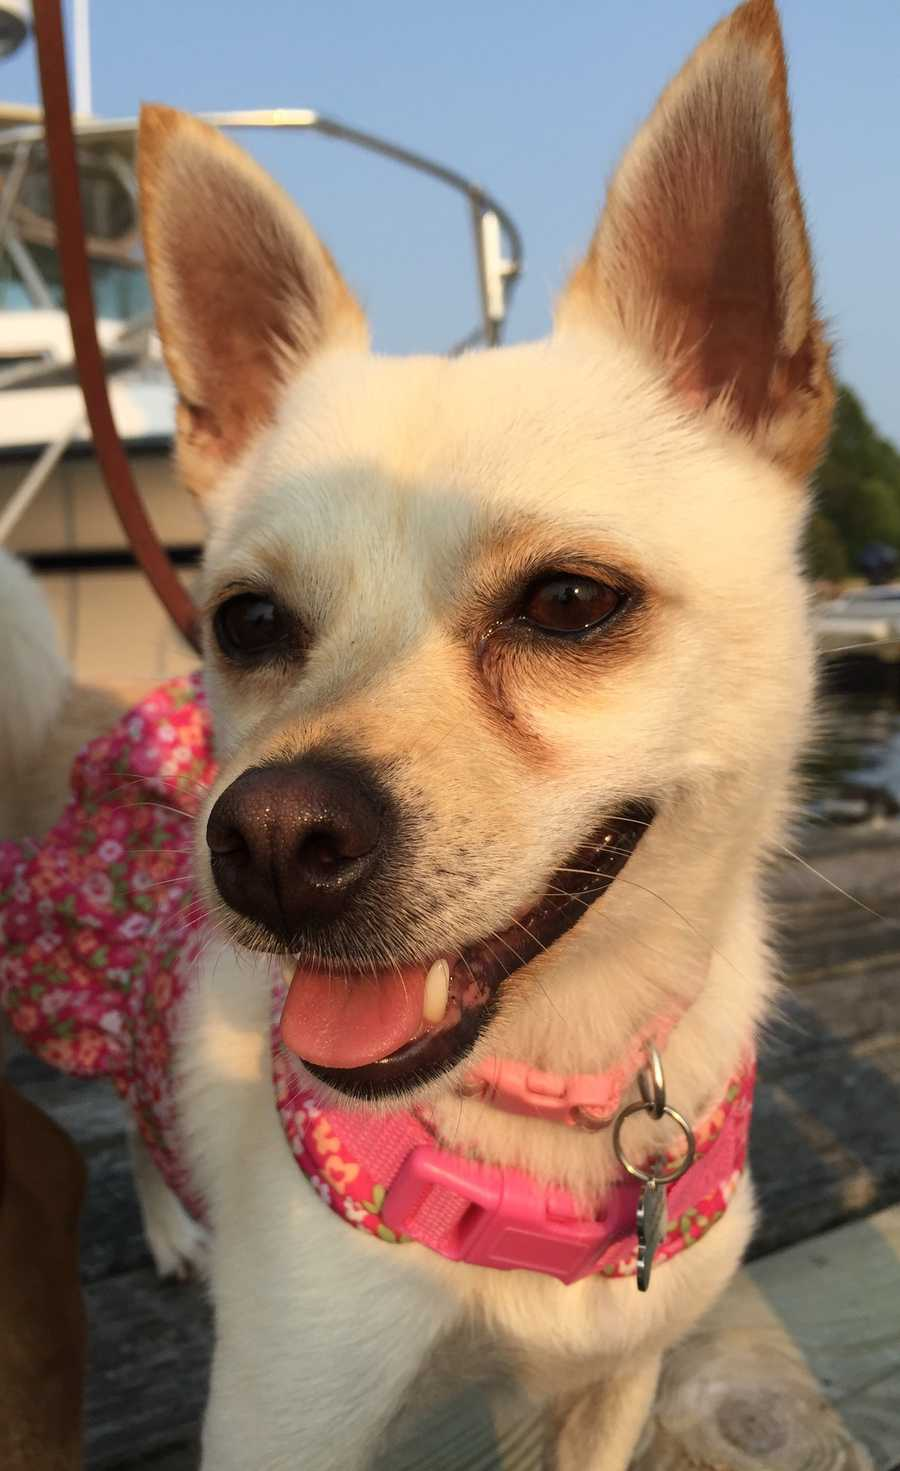 Diva is a 1.5 year old Chihuahua mix. She's an affectionate girl who will shower you with kisses! MORE